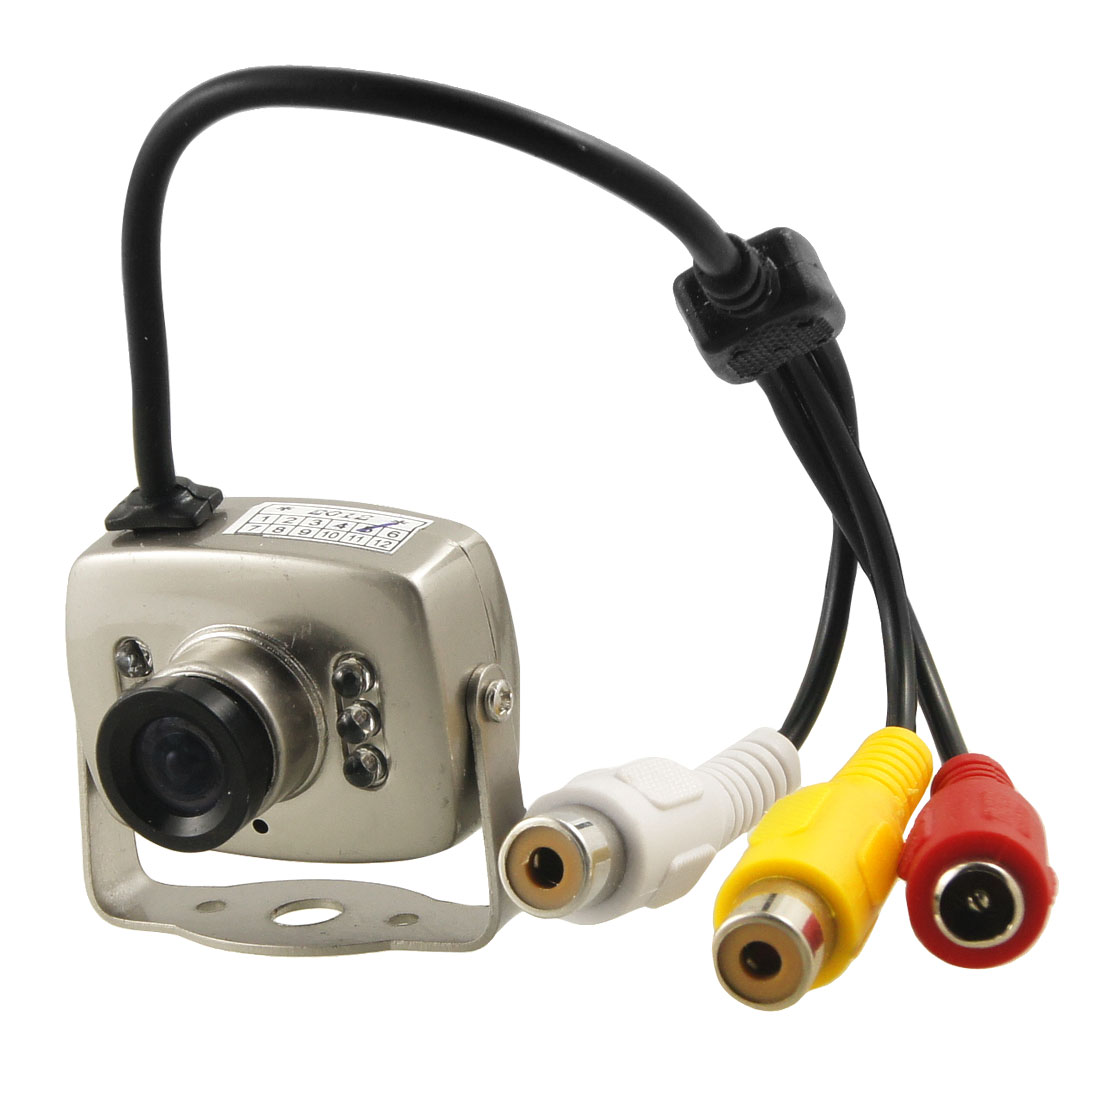 CCTV Gray 6 LEDs RCA Wired Mini Camera w Support